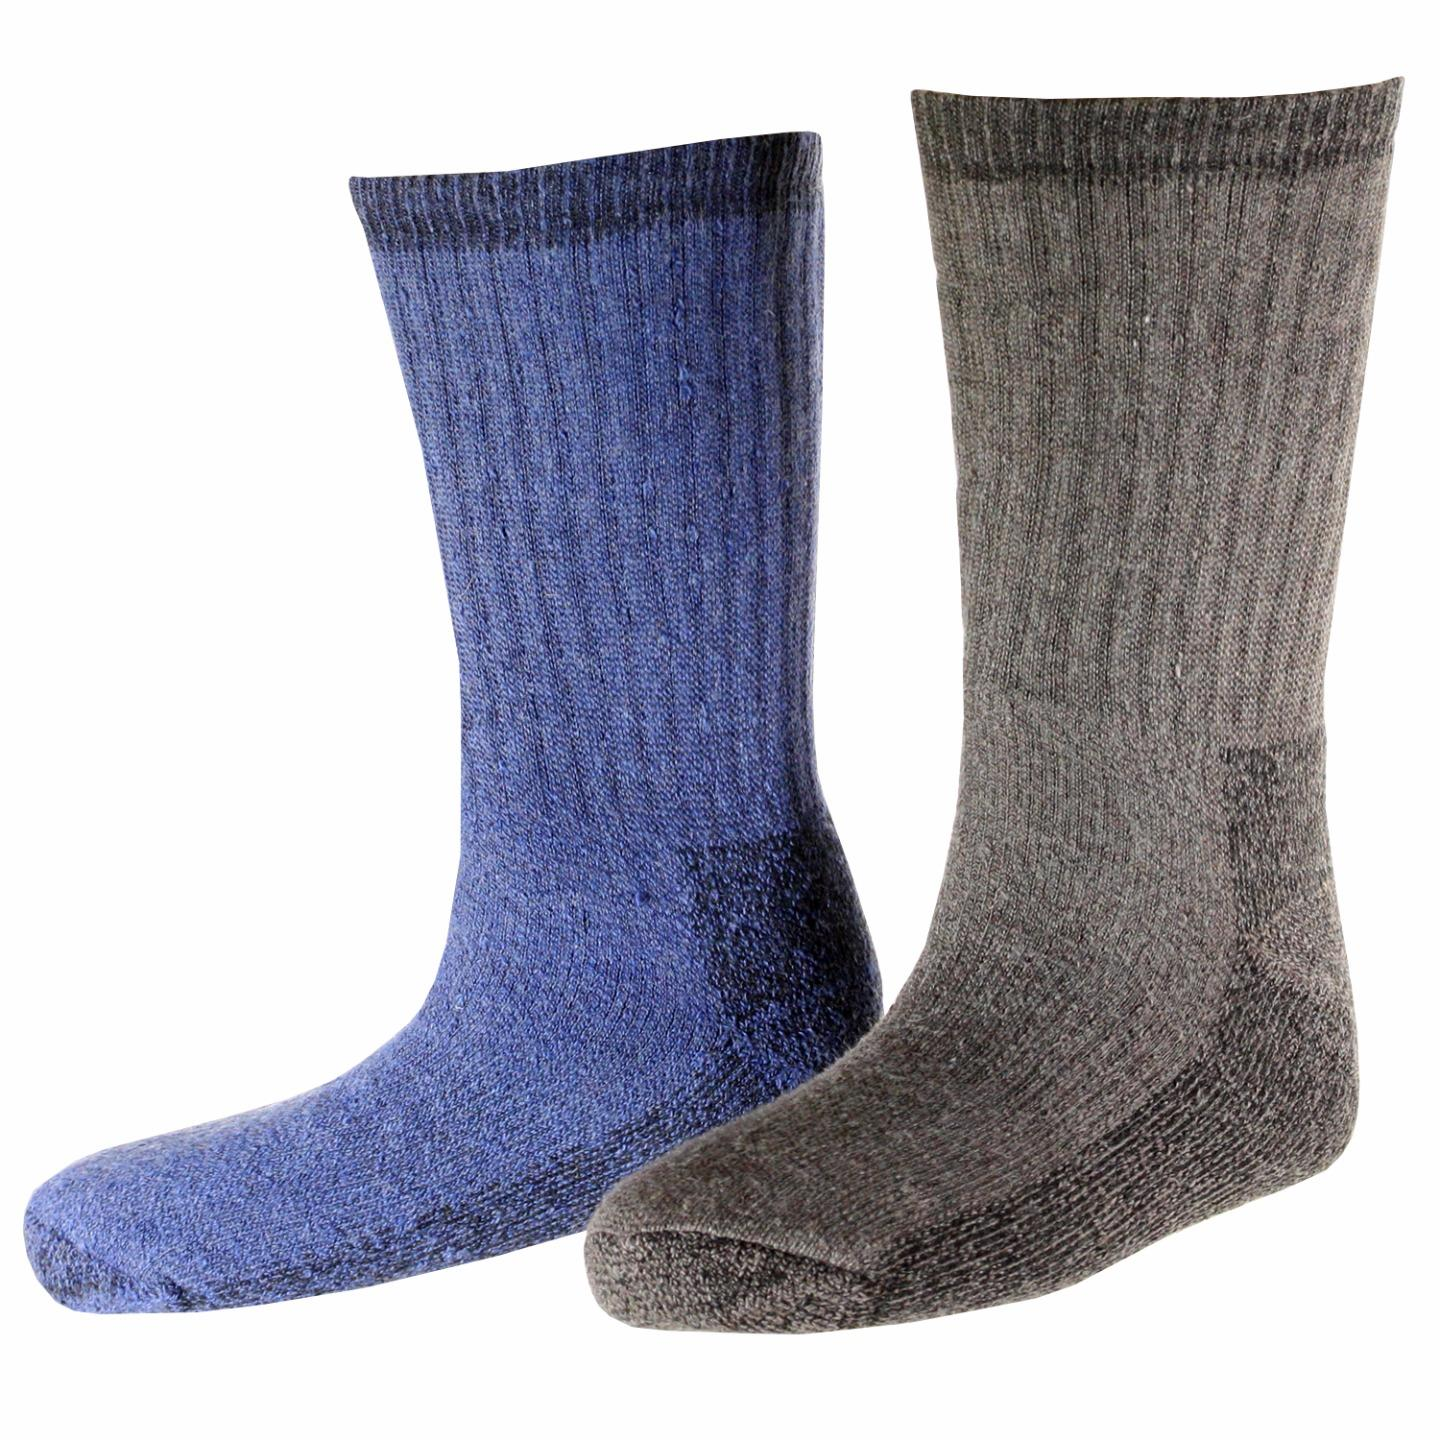 Woolrich Men's Ultimate Merino Wool Extreme Cold Socks 2pk Taupe & Denim Large